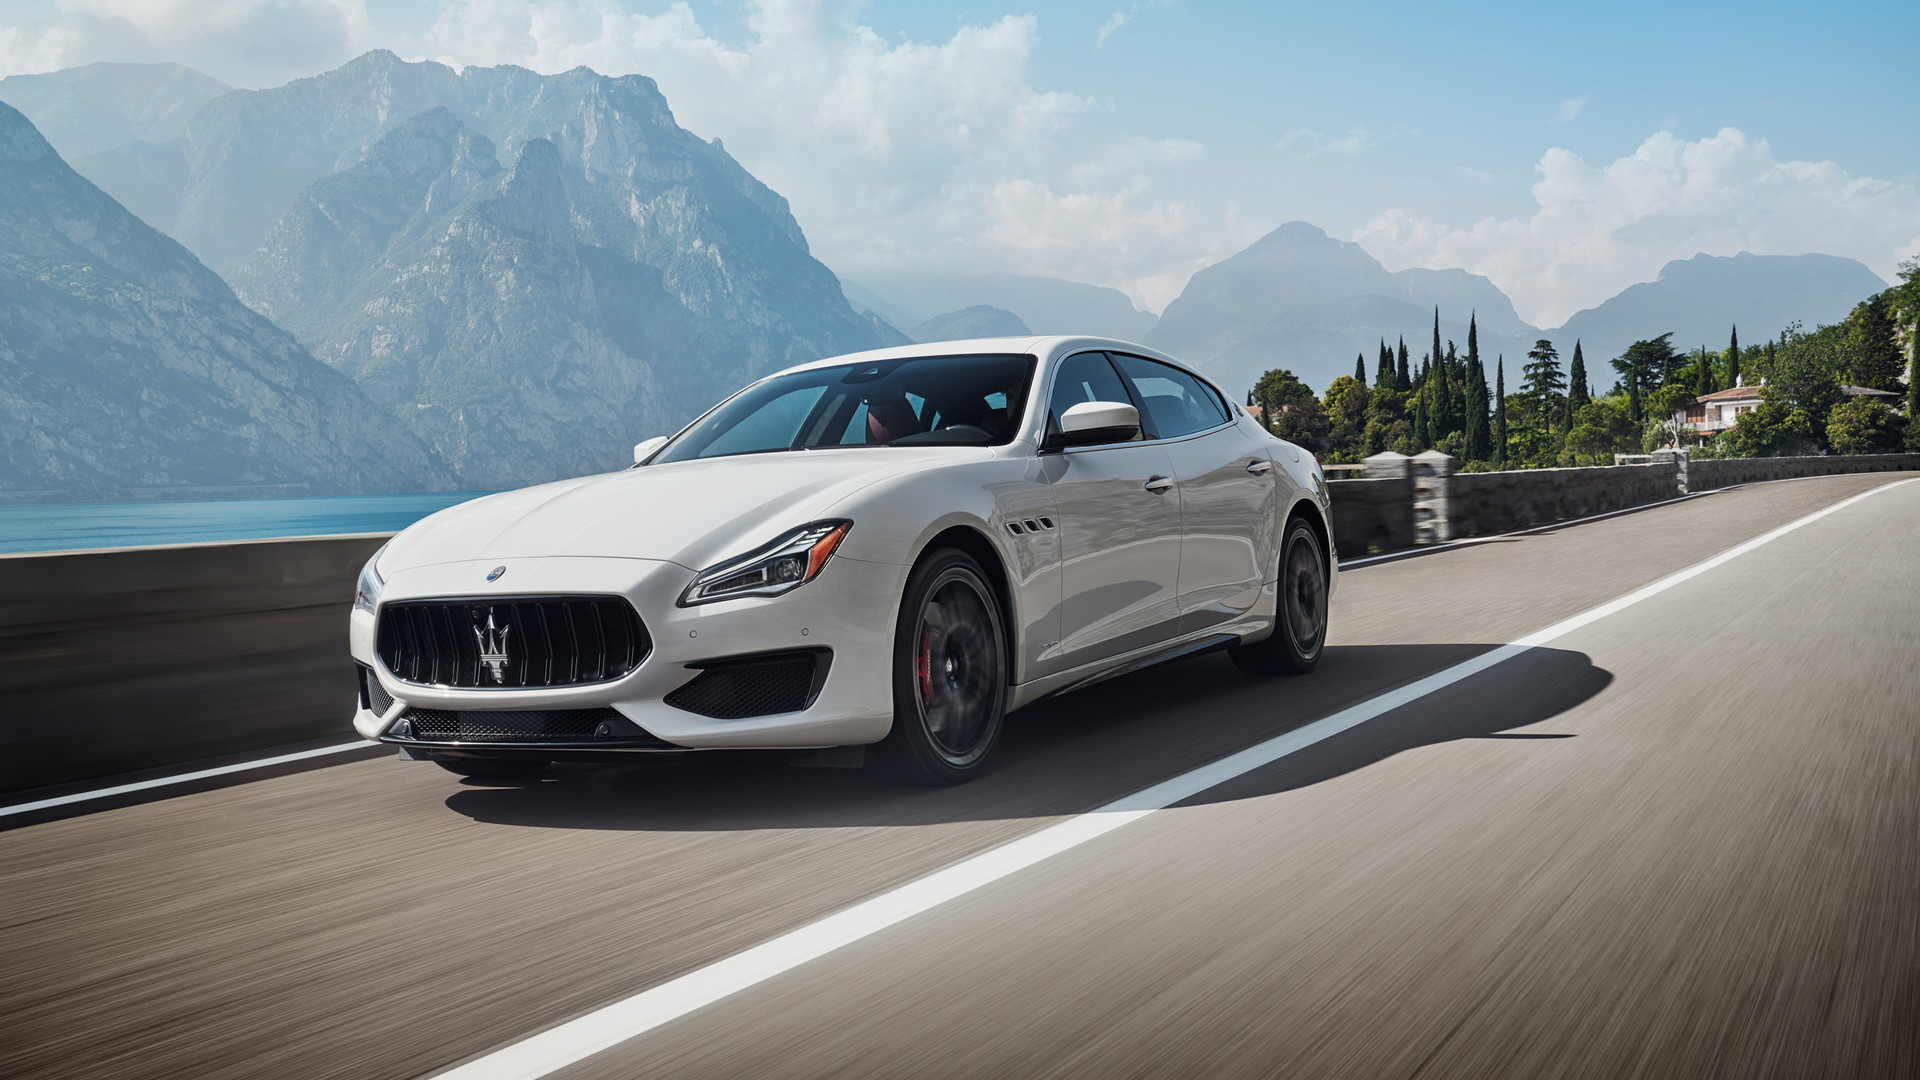 2019 Maserati Quattroporte GTS - Luxury Care